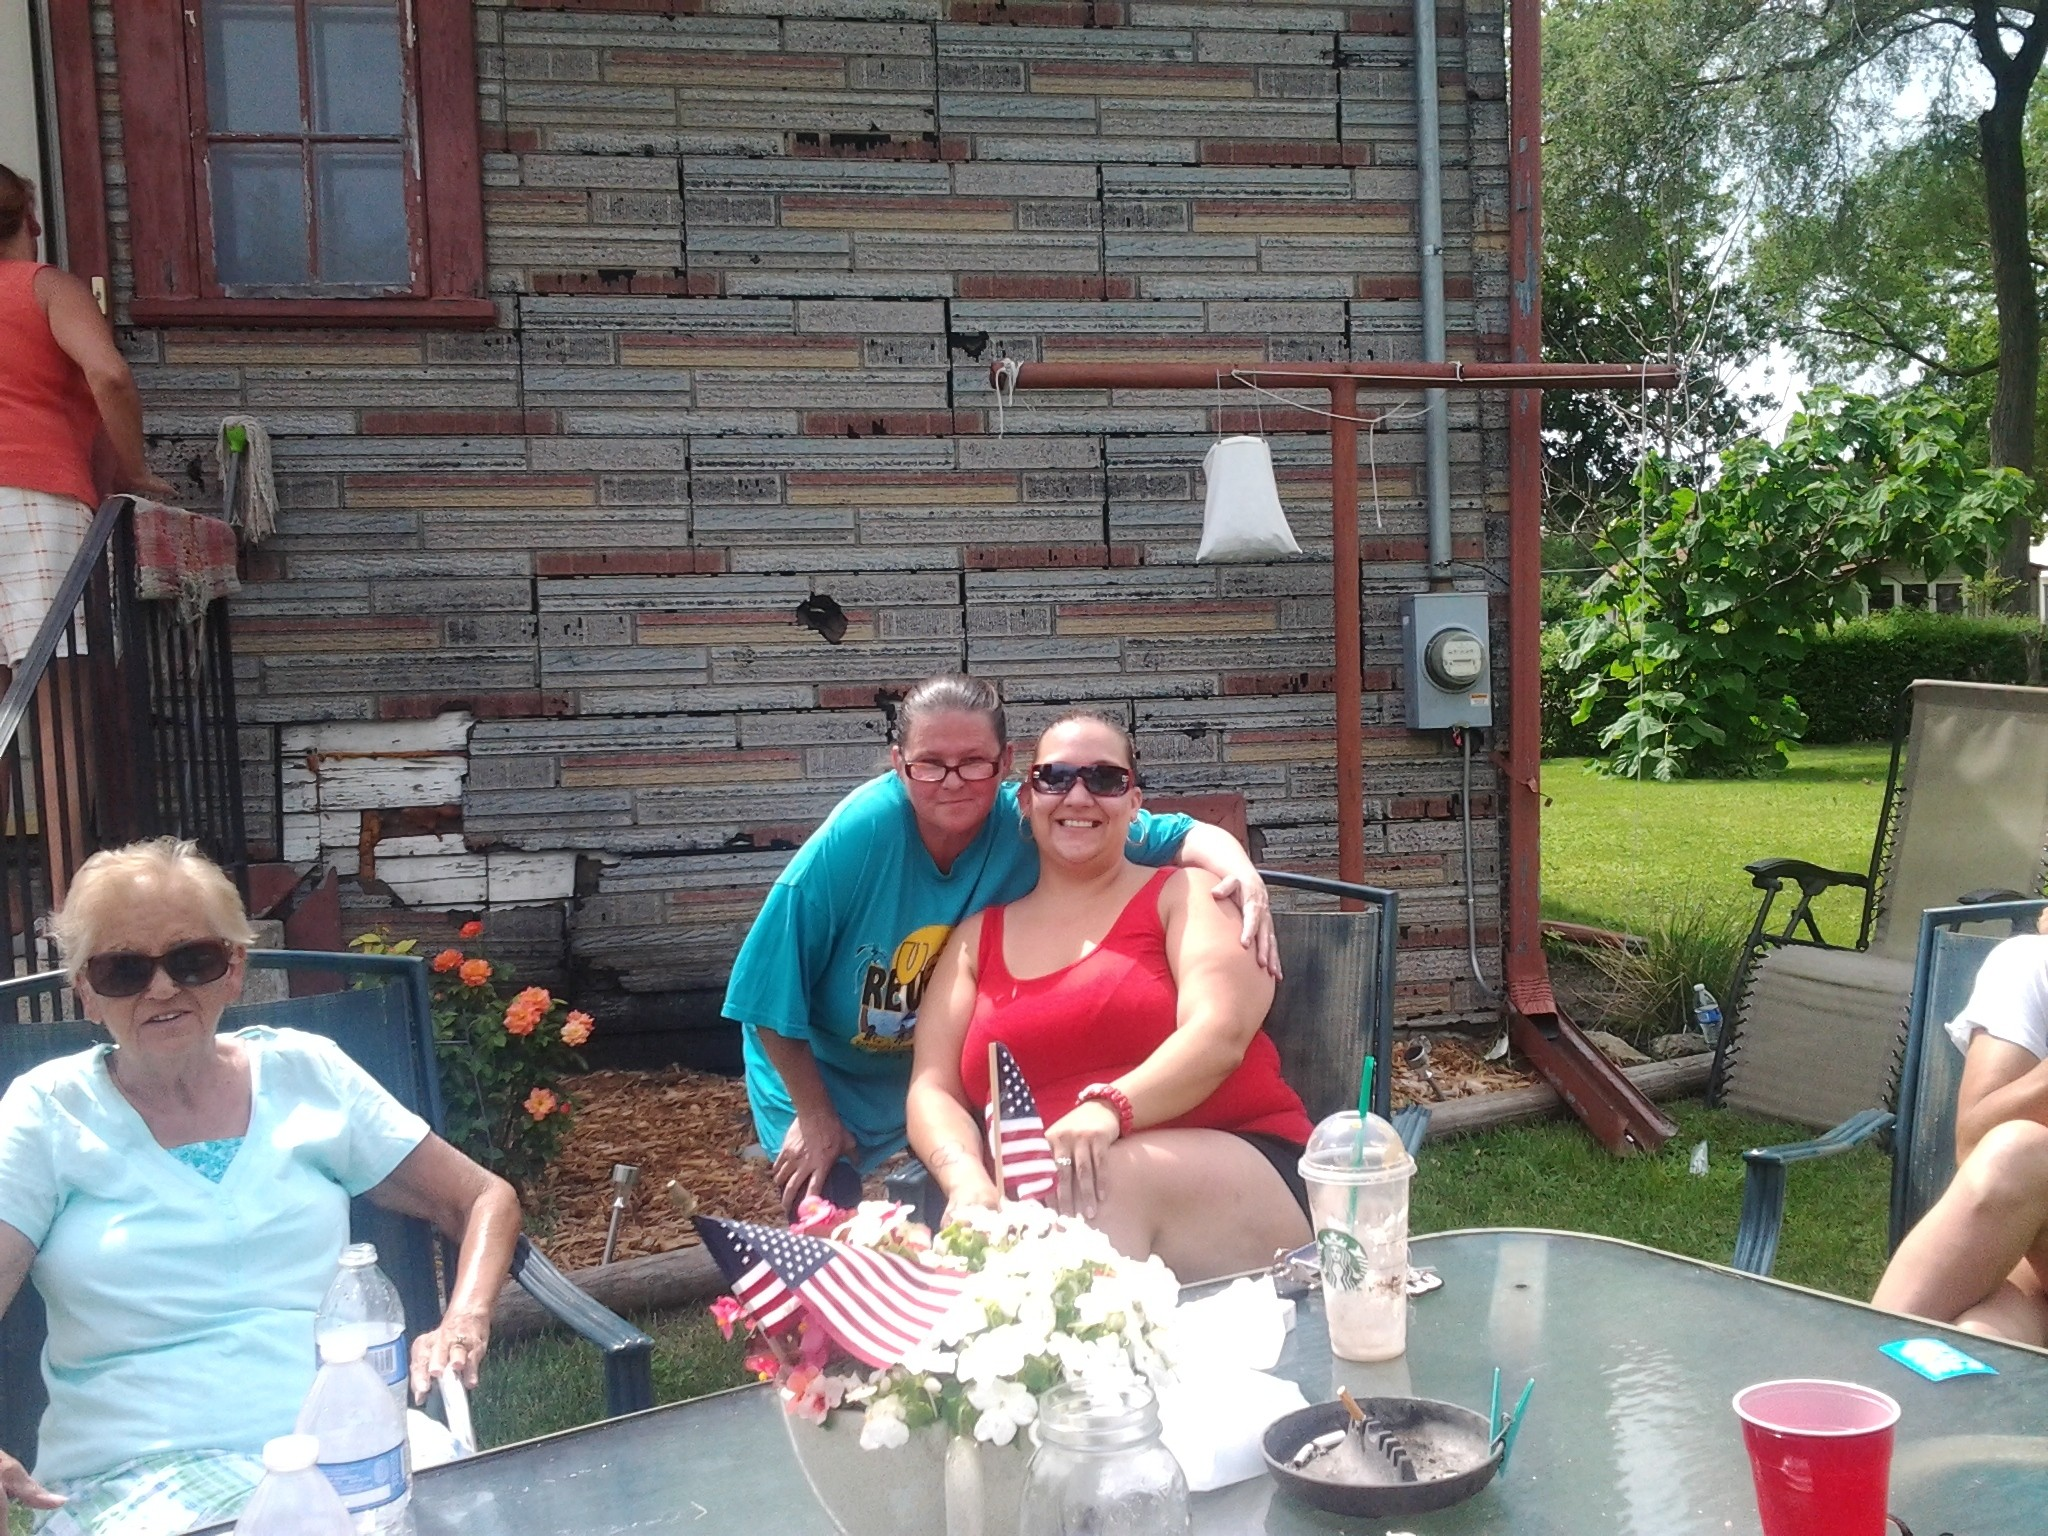 Me and cuz Kelly it had been years since I had seen her